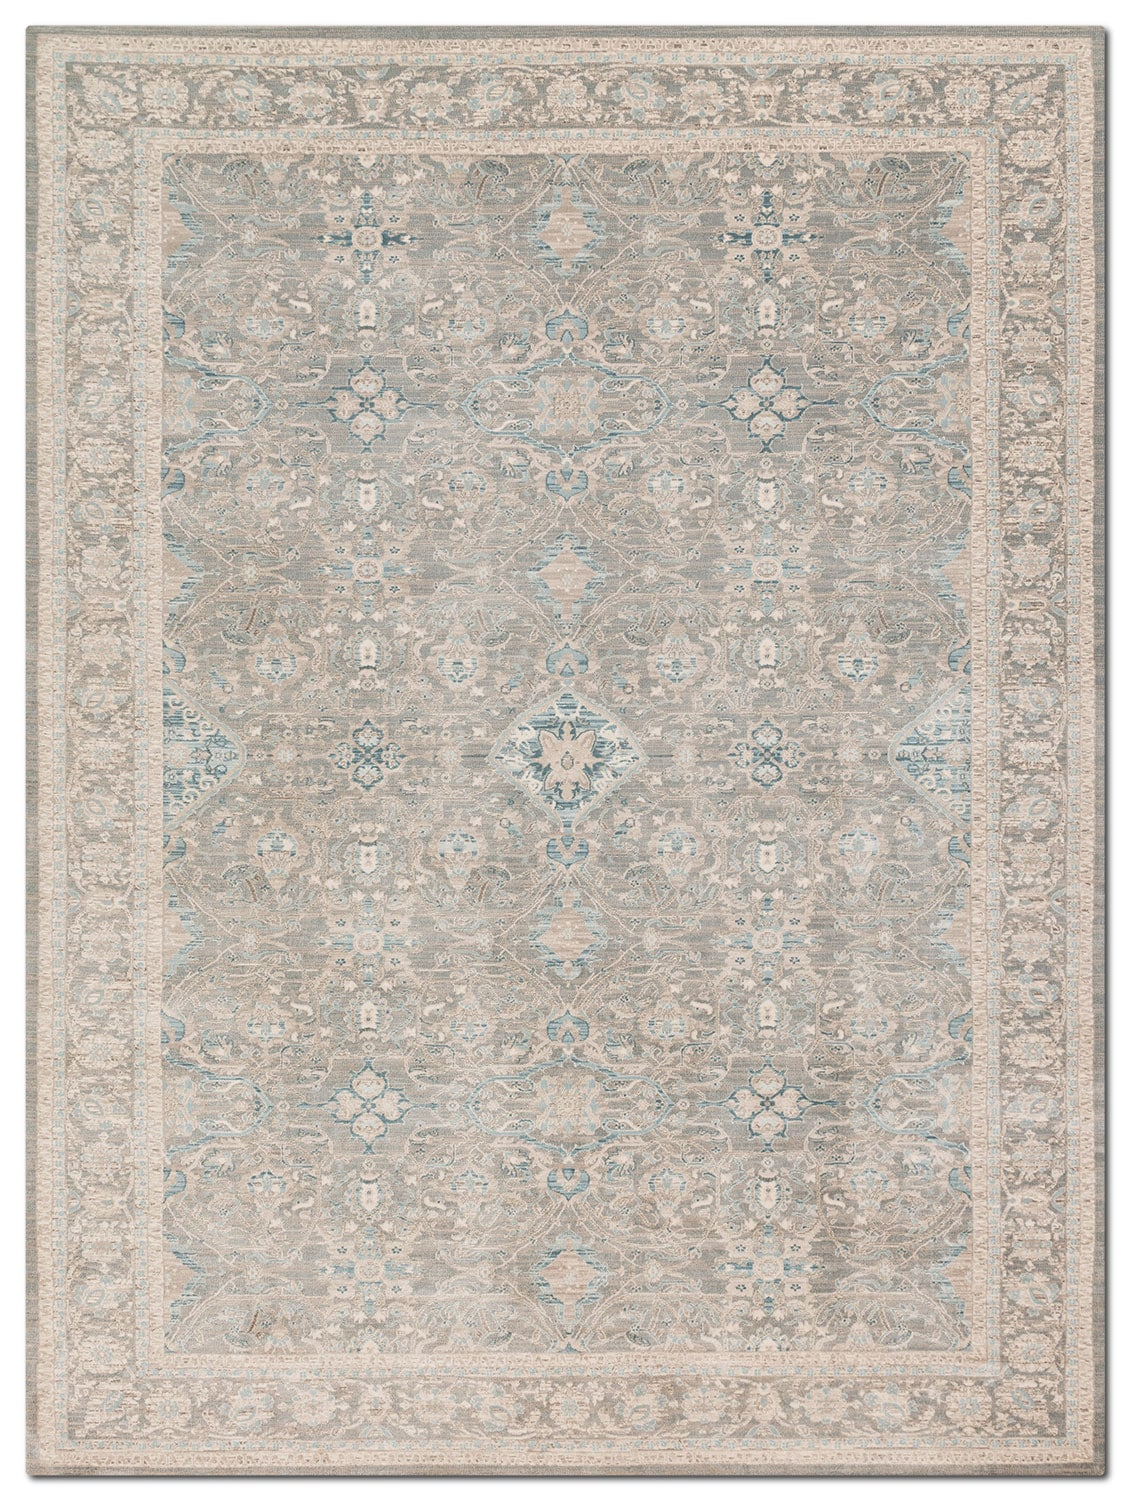 Rugs - Ella Rose 12' x 15' Rug - Steel